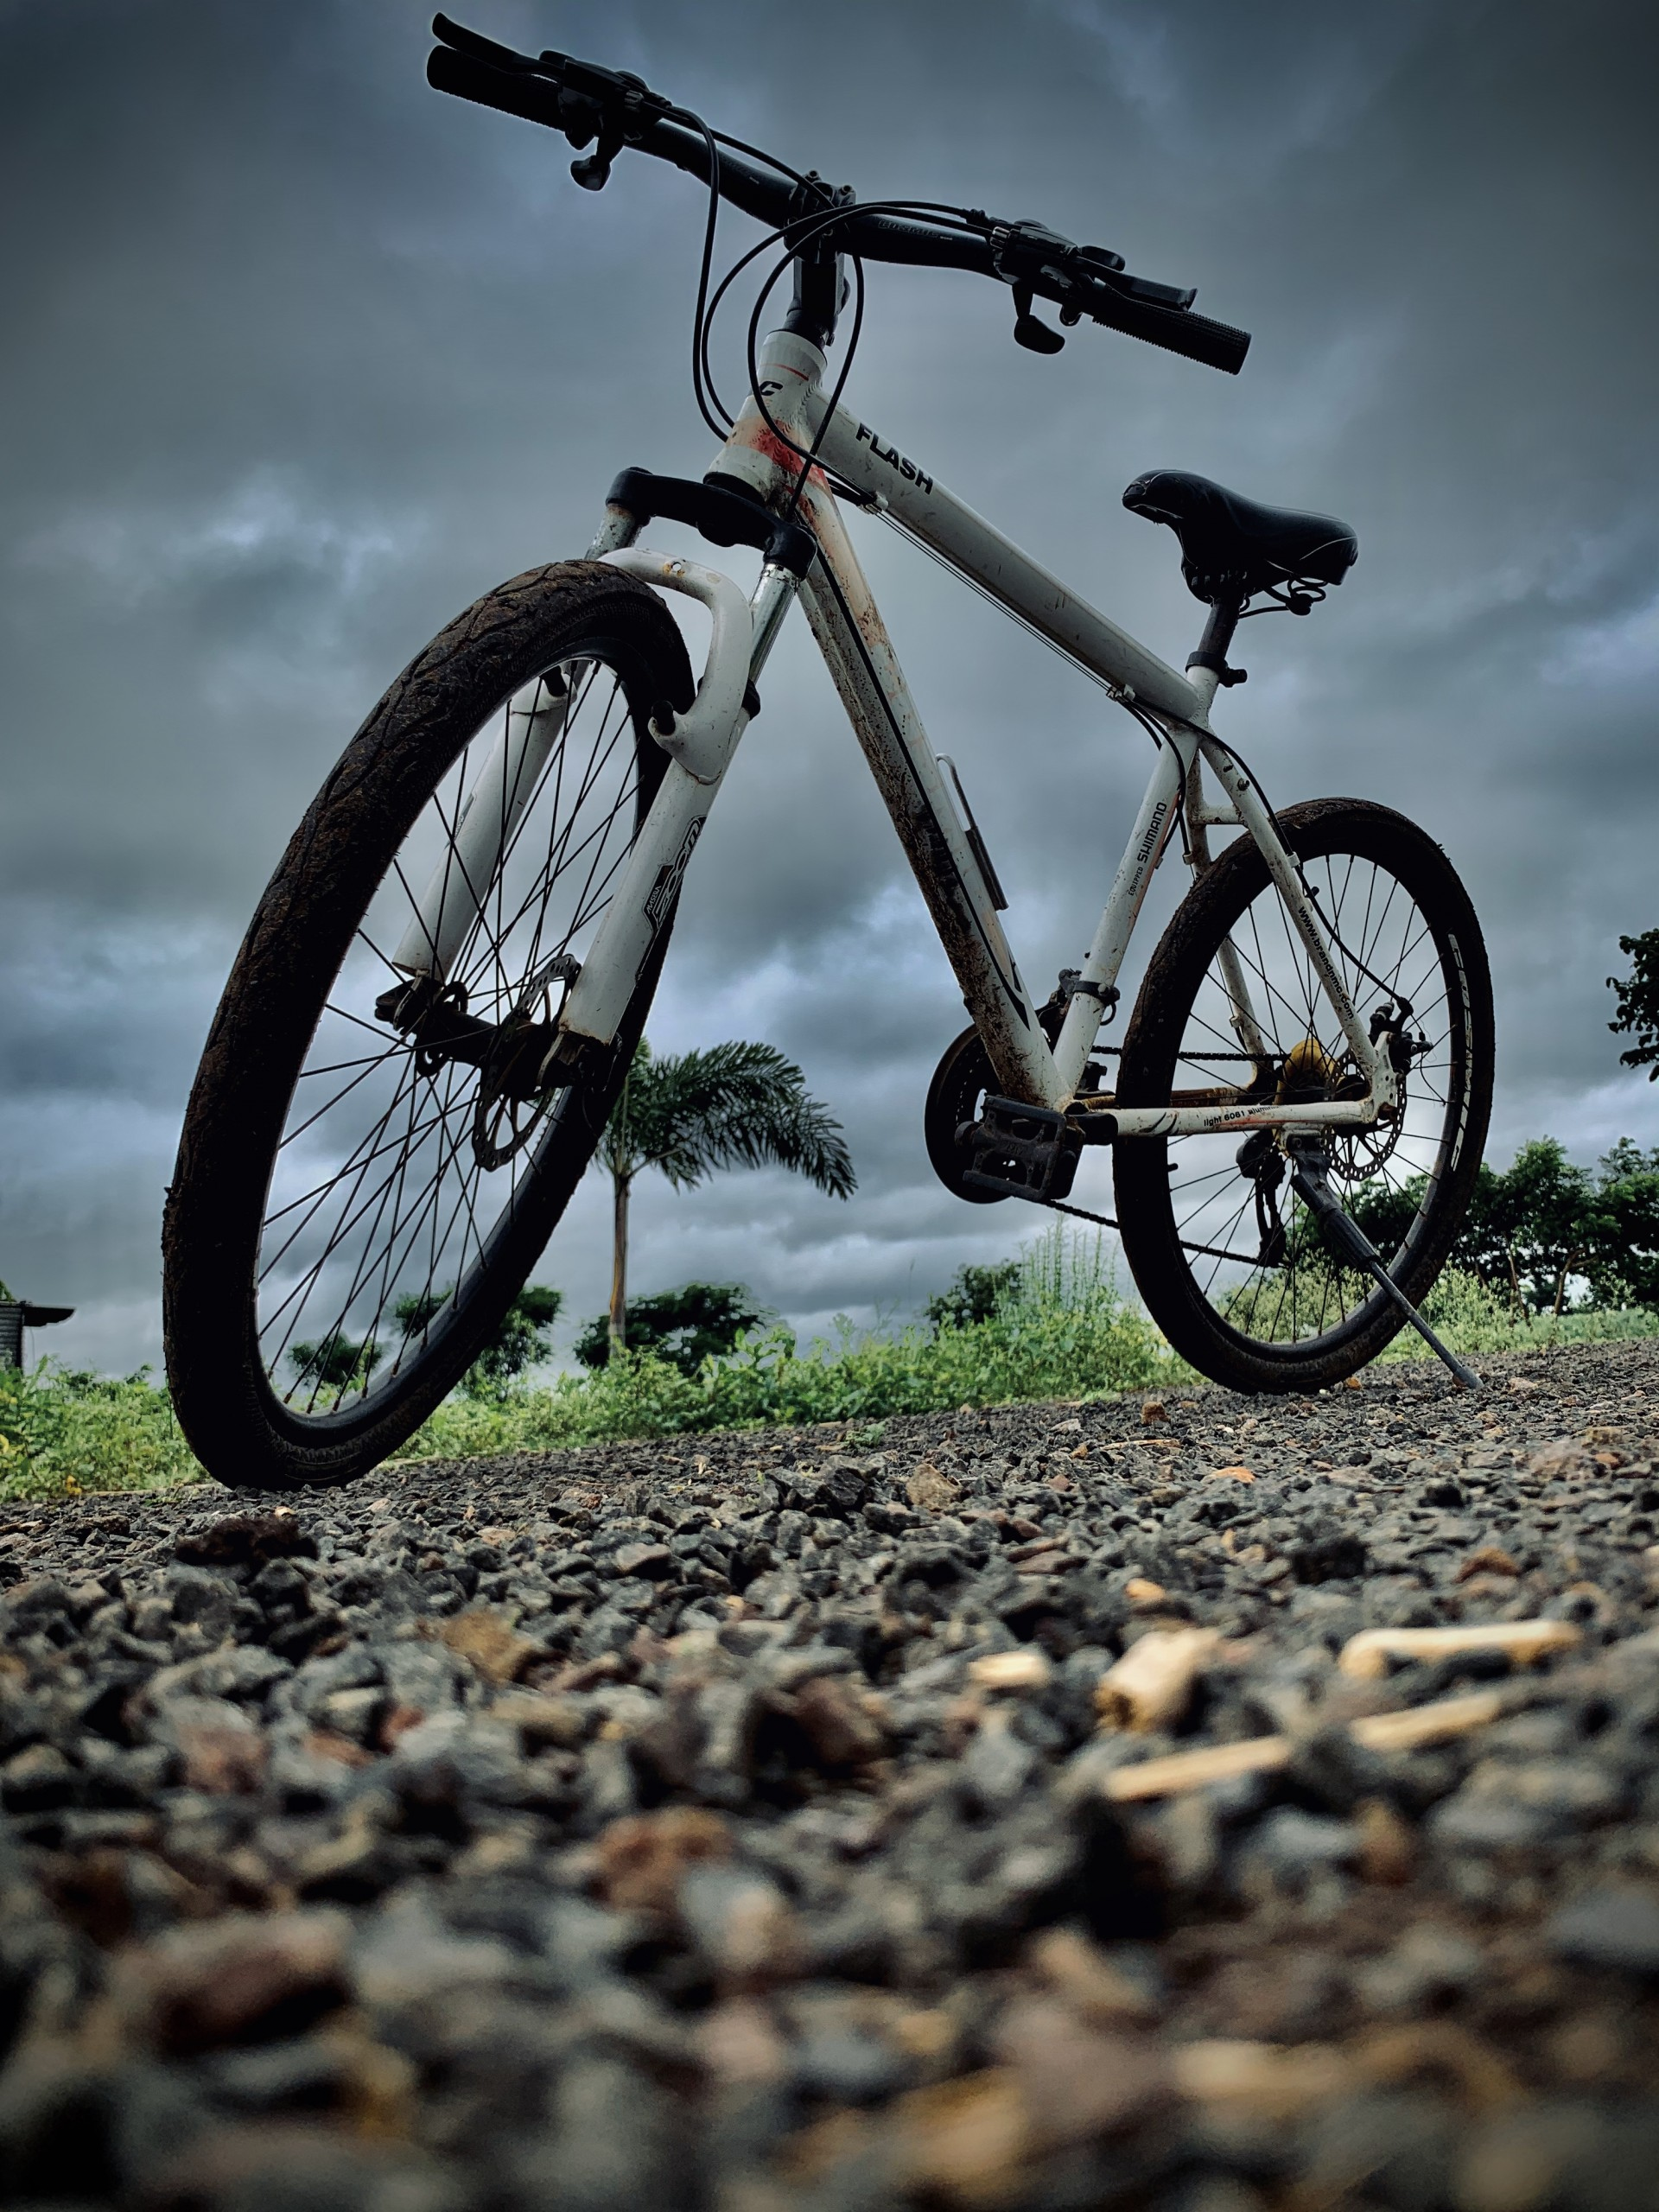 Cycle in a stormy evening